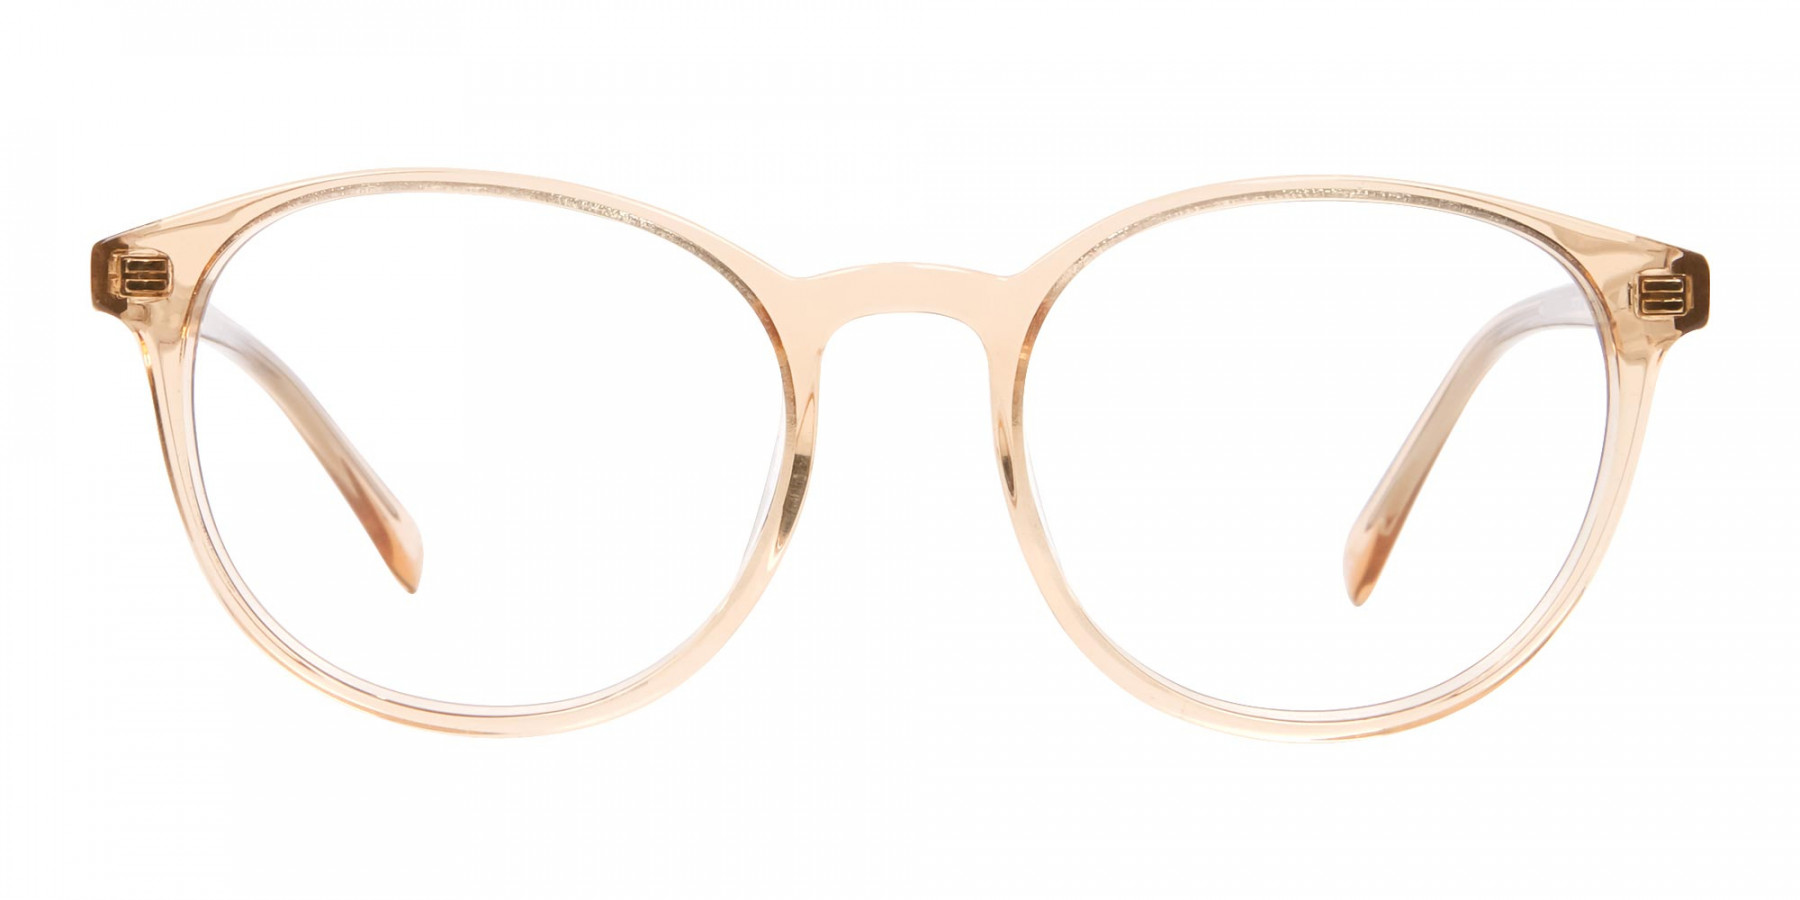 Round Crystal Amber Glasses Online for Men and Women UK - 1